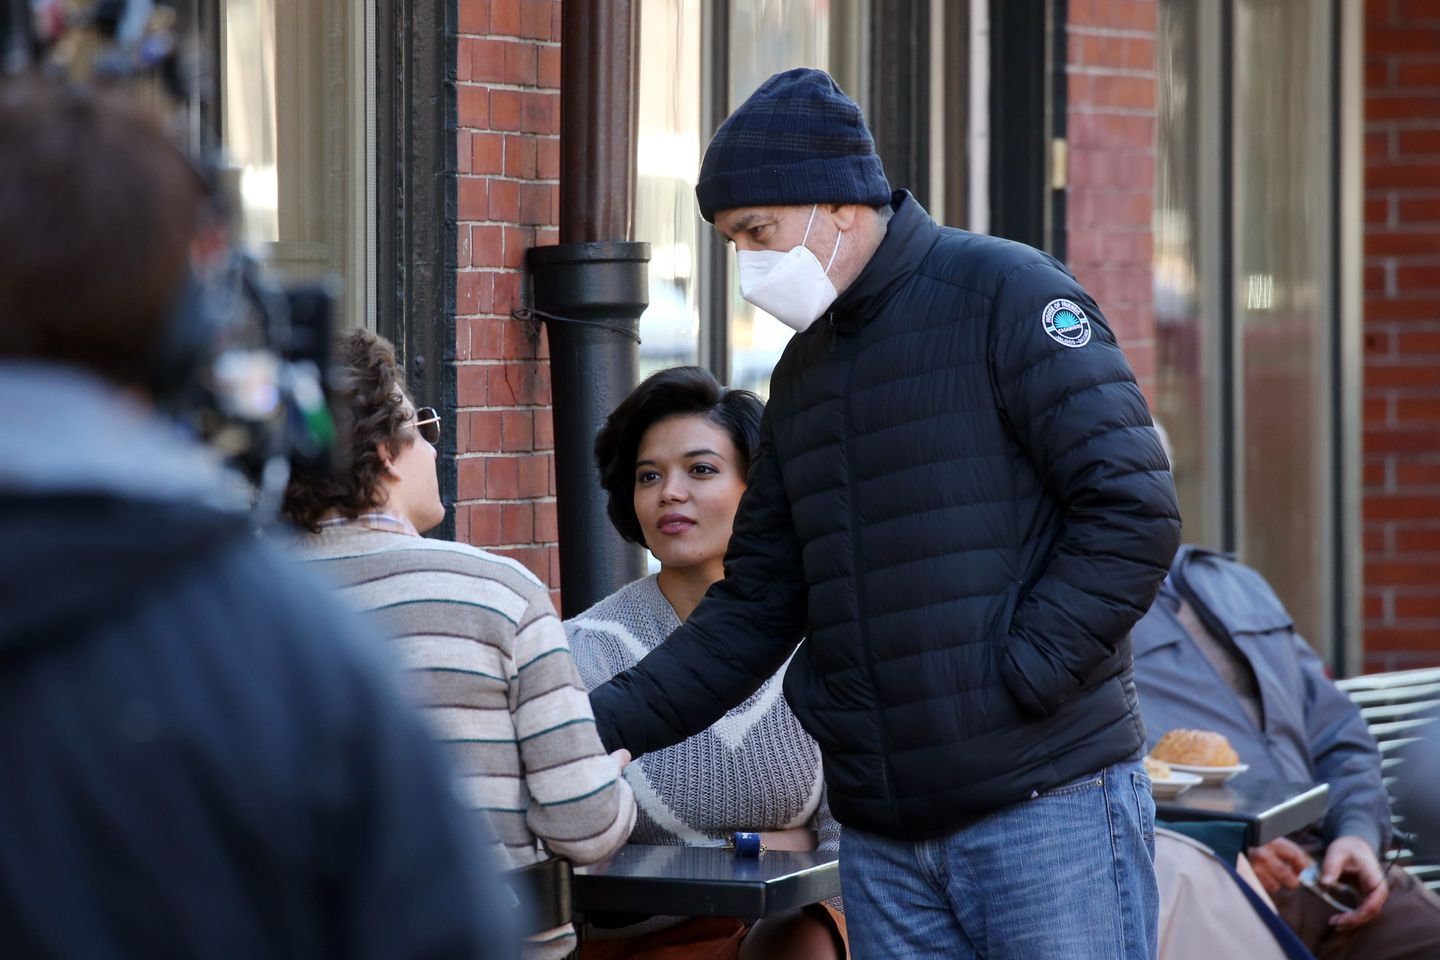 George Clooney and Ben Affleck Spotted filming in the South End this morning MHXAR7FGAXSGH5ZRRVHYAJ2N6I